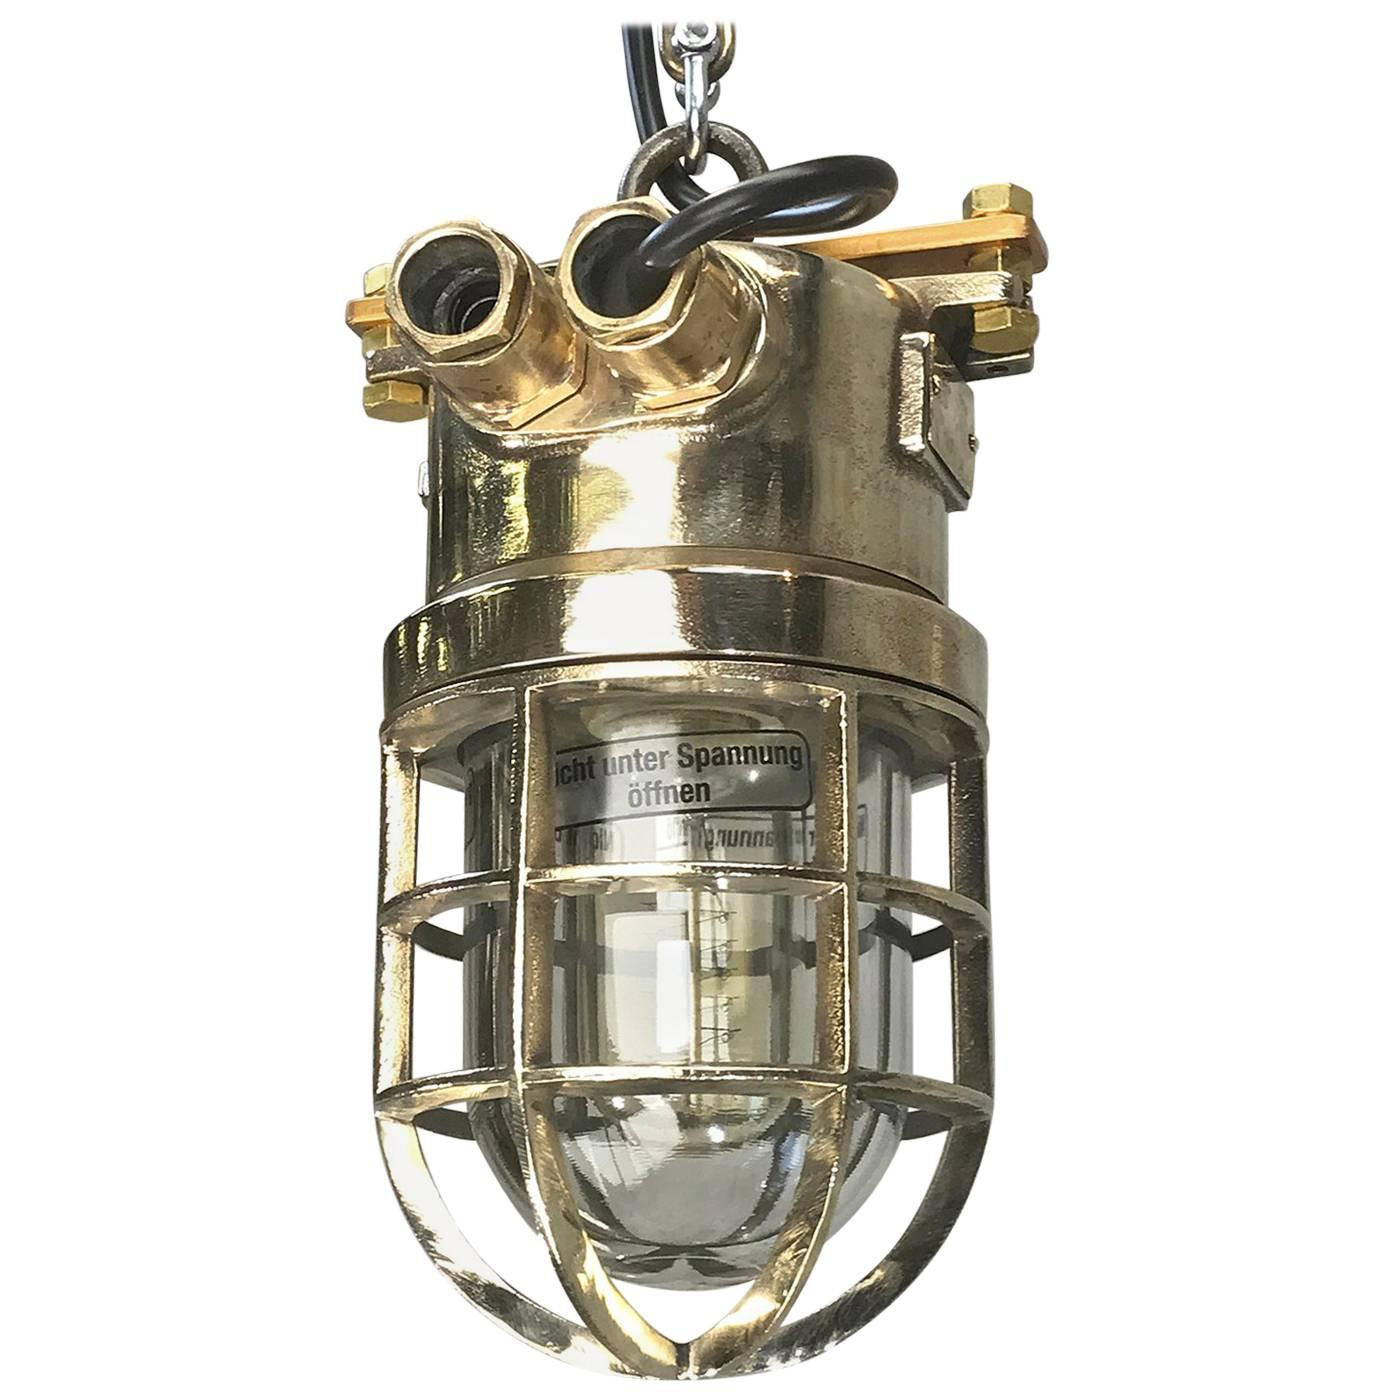 Late Century German Cast Brass and Glass Shade Explosion Proof Pendant Light